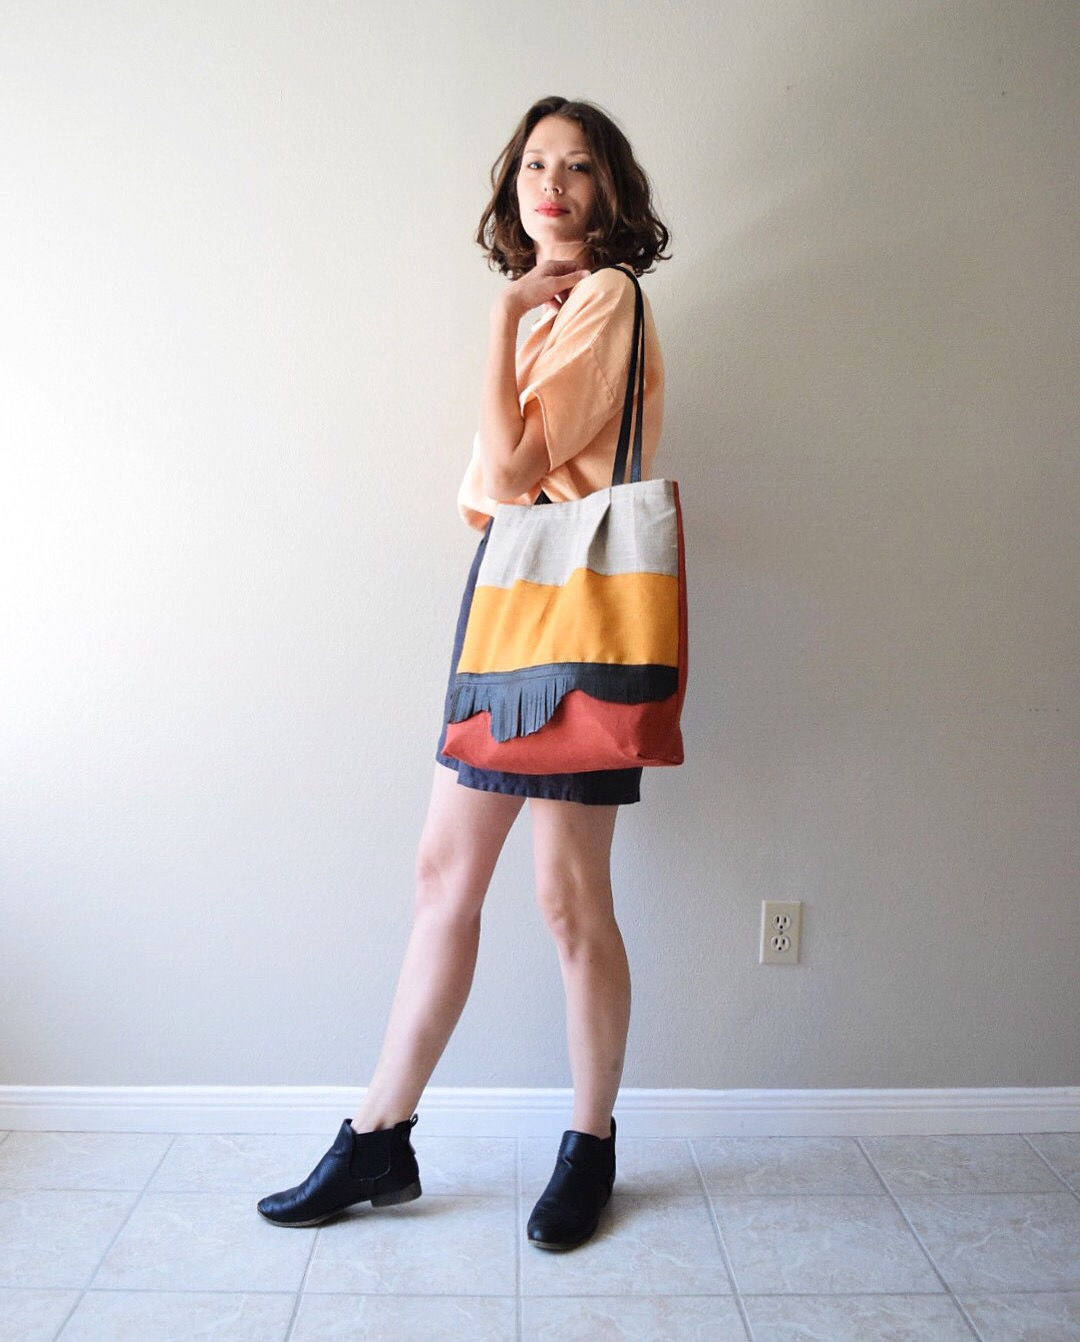 Randee, Top, shorts + tote made with Fabrics-Store linen. Nine Iron, Apricot Ice, Sedona, Autumn Gold, and M...